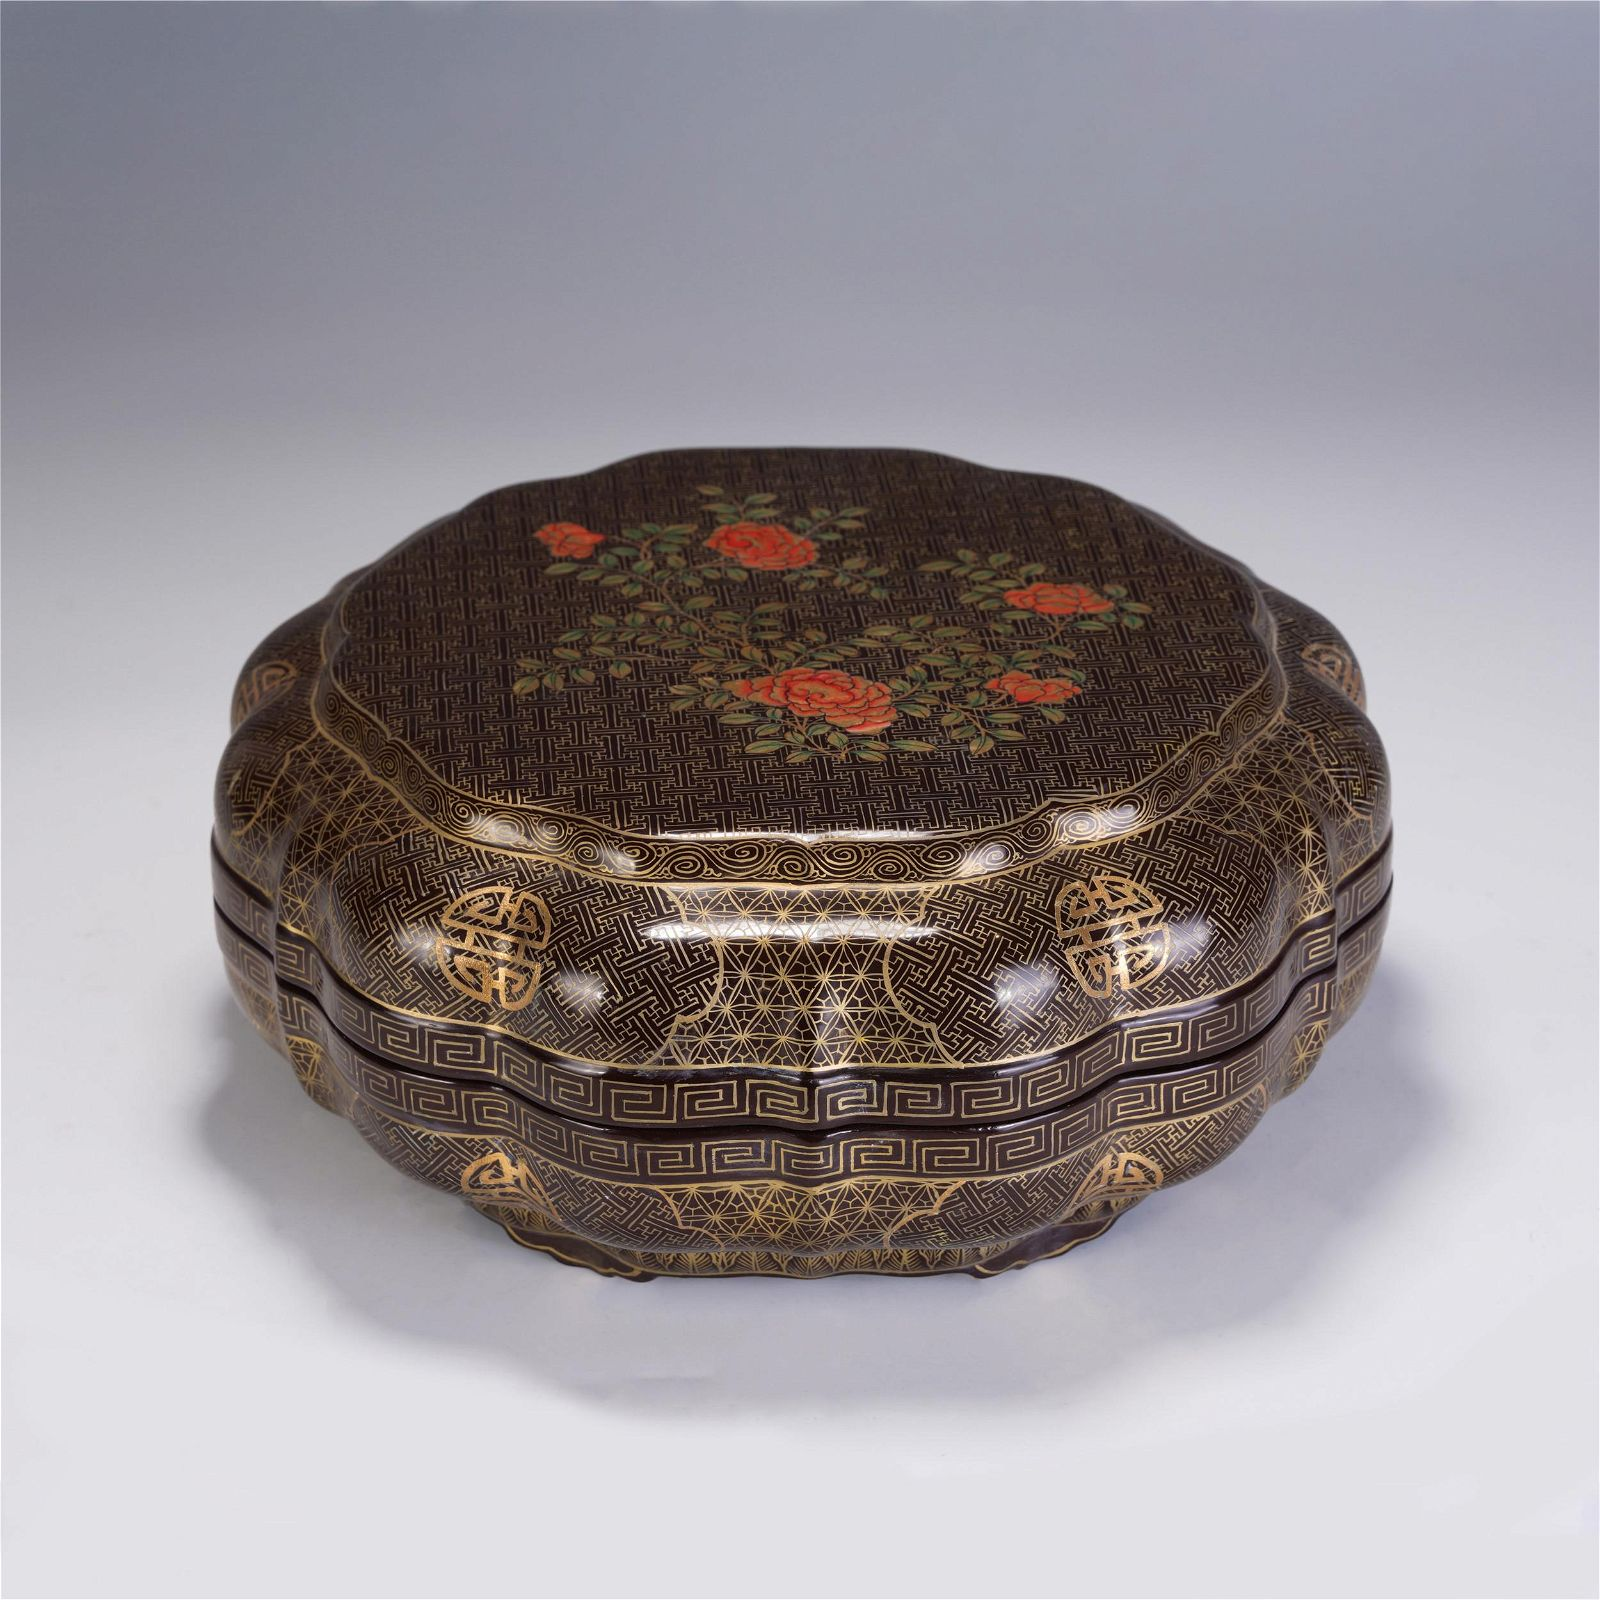 CHINESE RED LACQUER GILT-DECORATED FLOWERS PATTERN